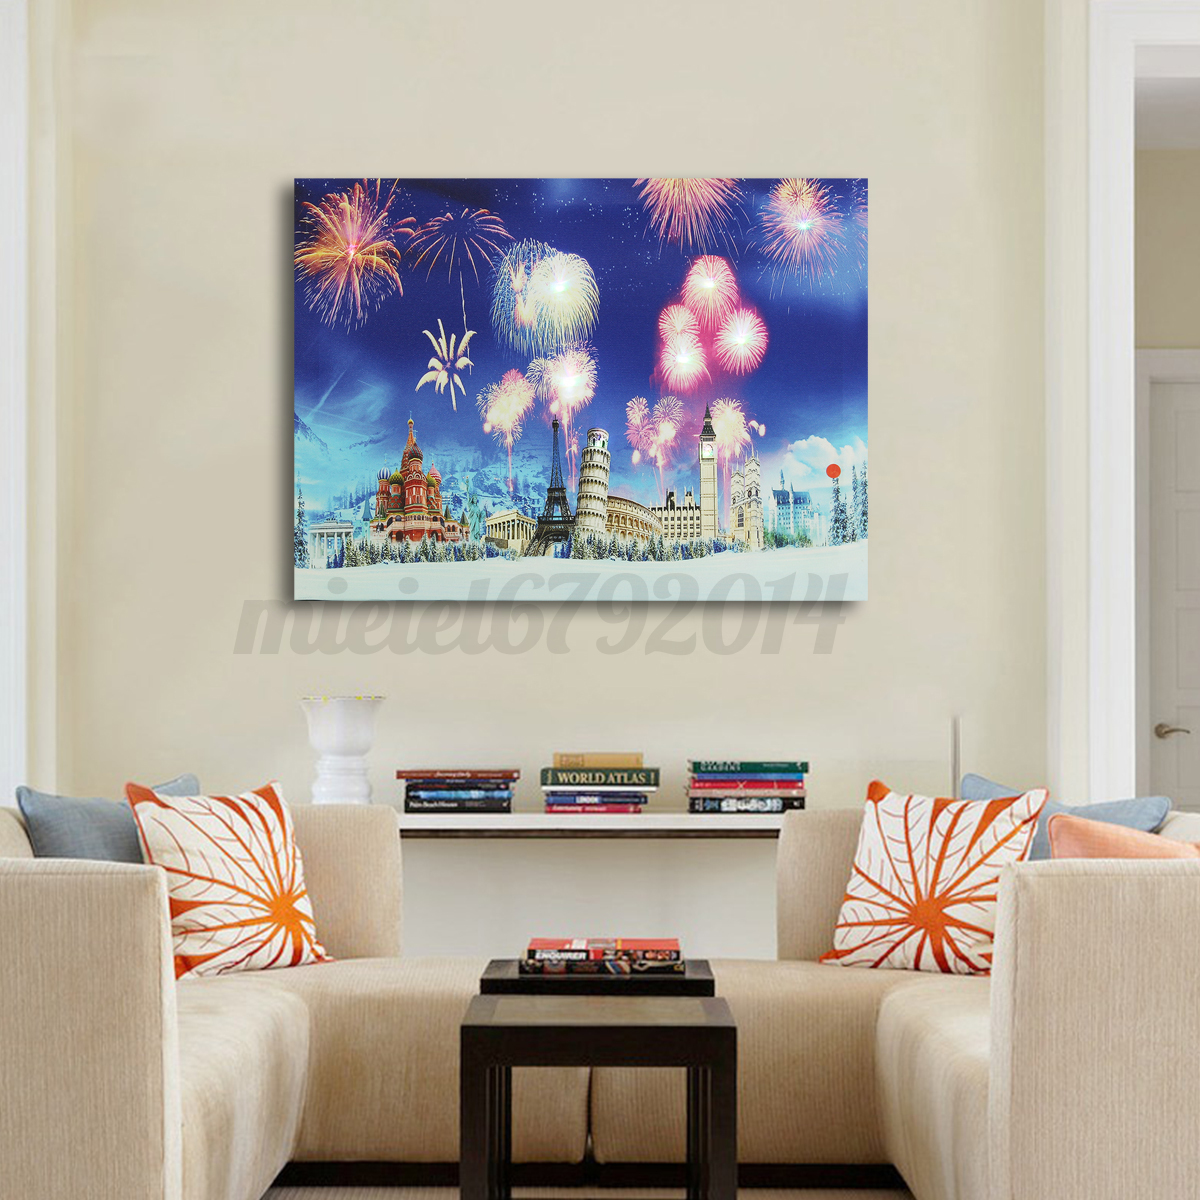 Hanging up wall decor : Led light up christmas canvas pictures cm xmas